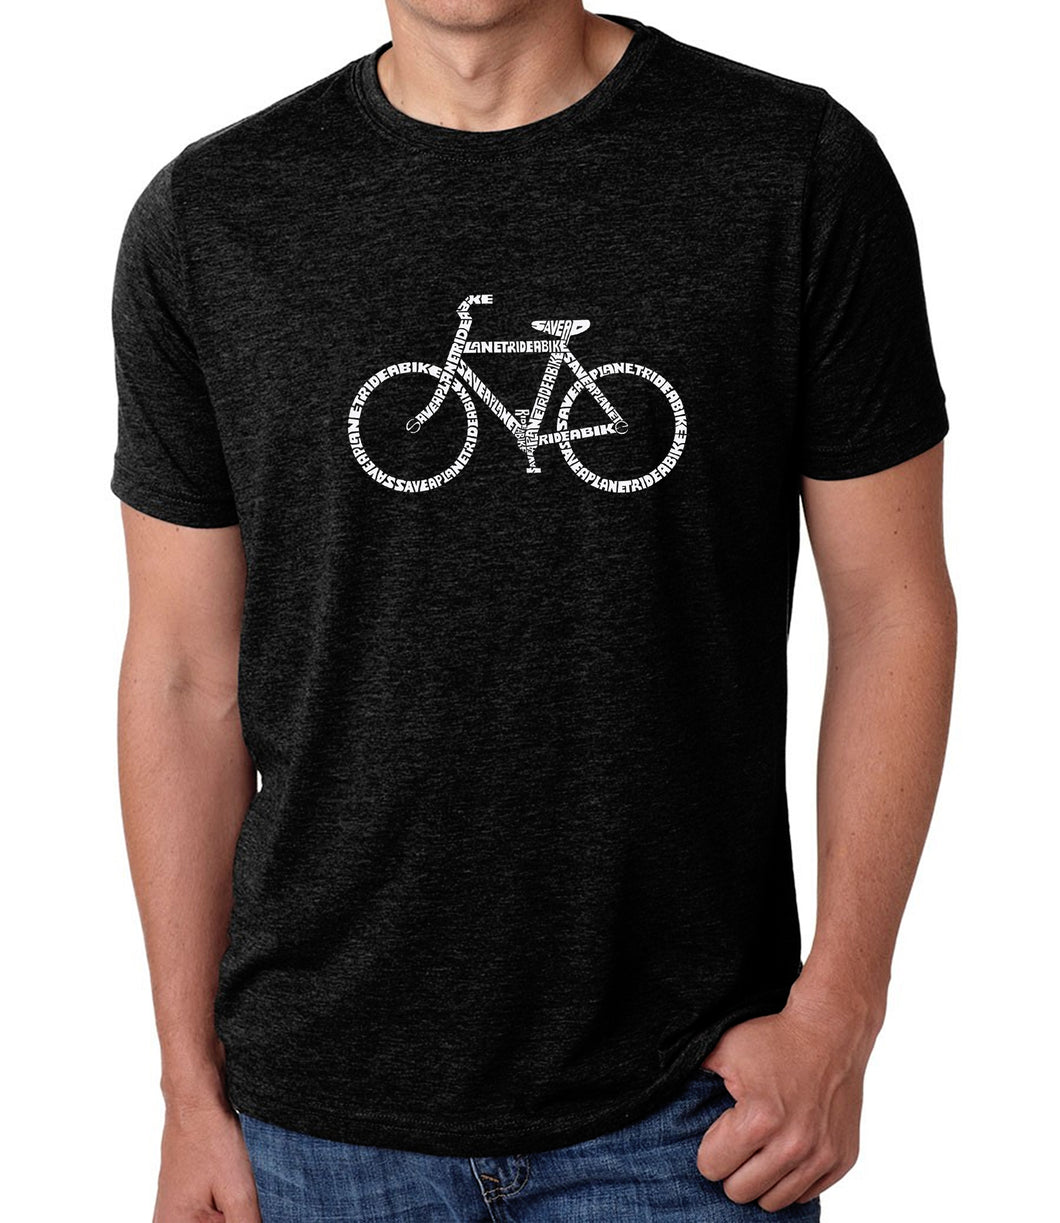 LA Pop Art Men's Premium Blend Word Art T-shirt - SAVE A PLANET, RIDE A BIKE